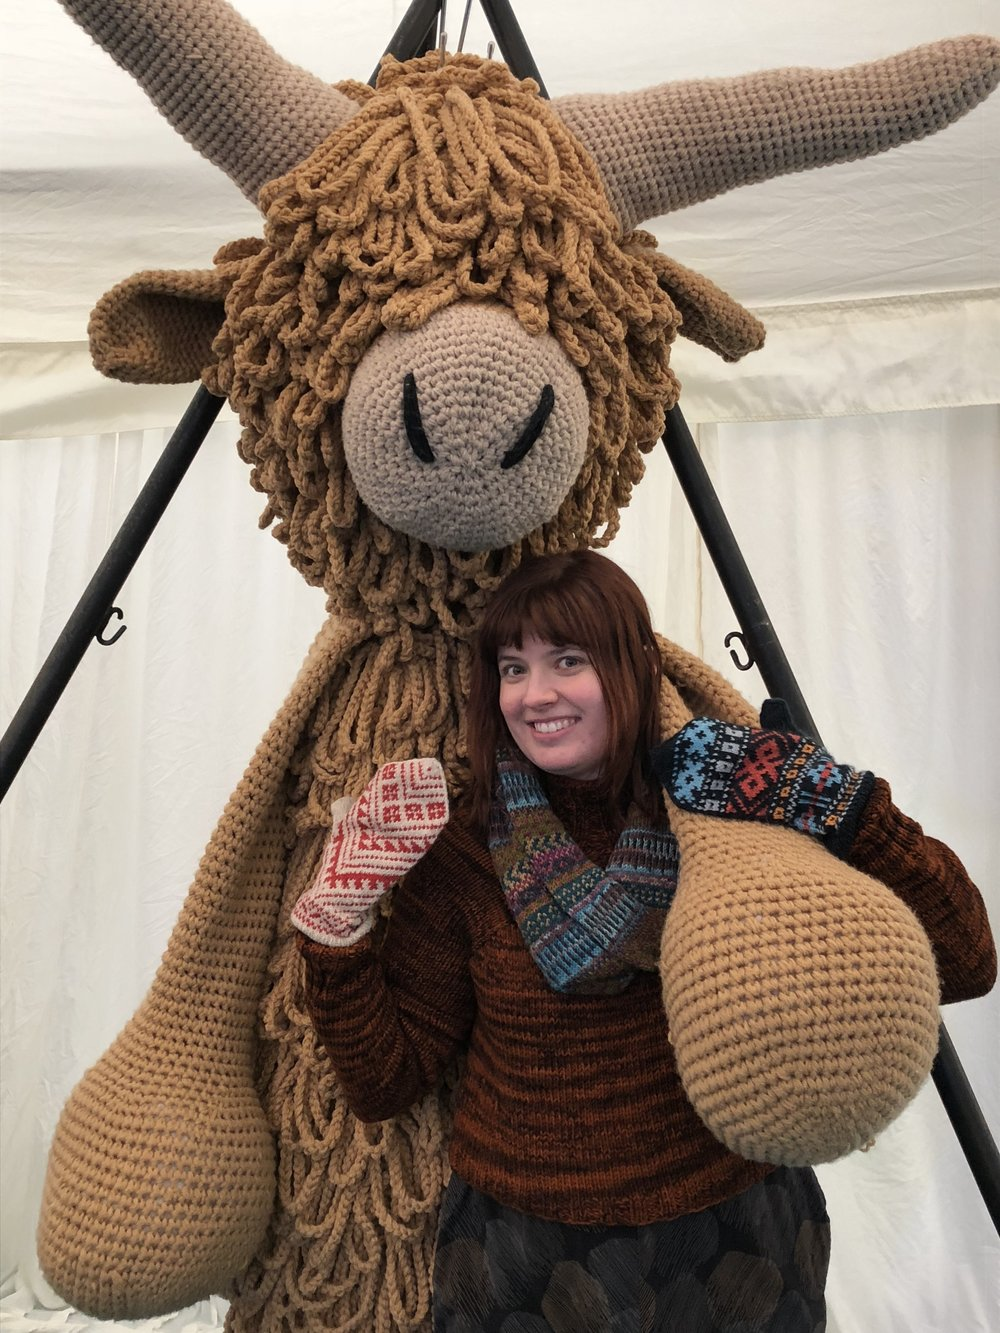 Morag the Highland Coo made by Toft UK